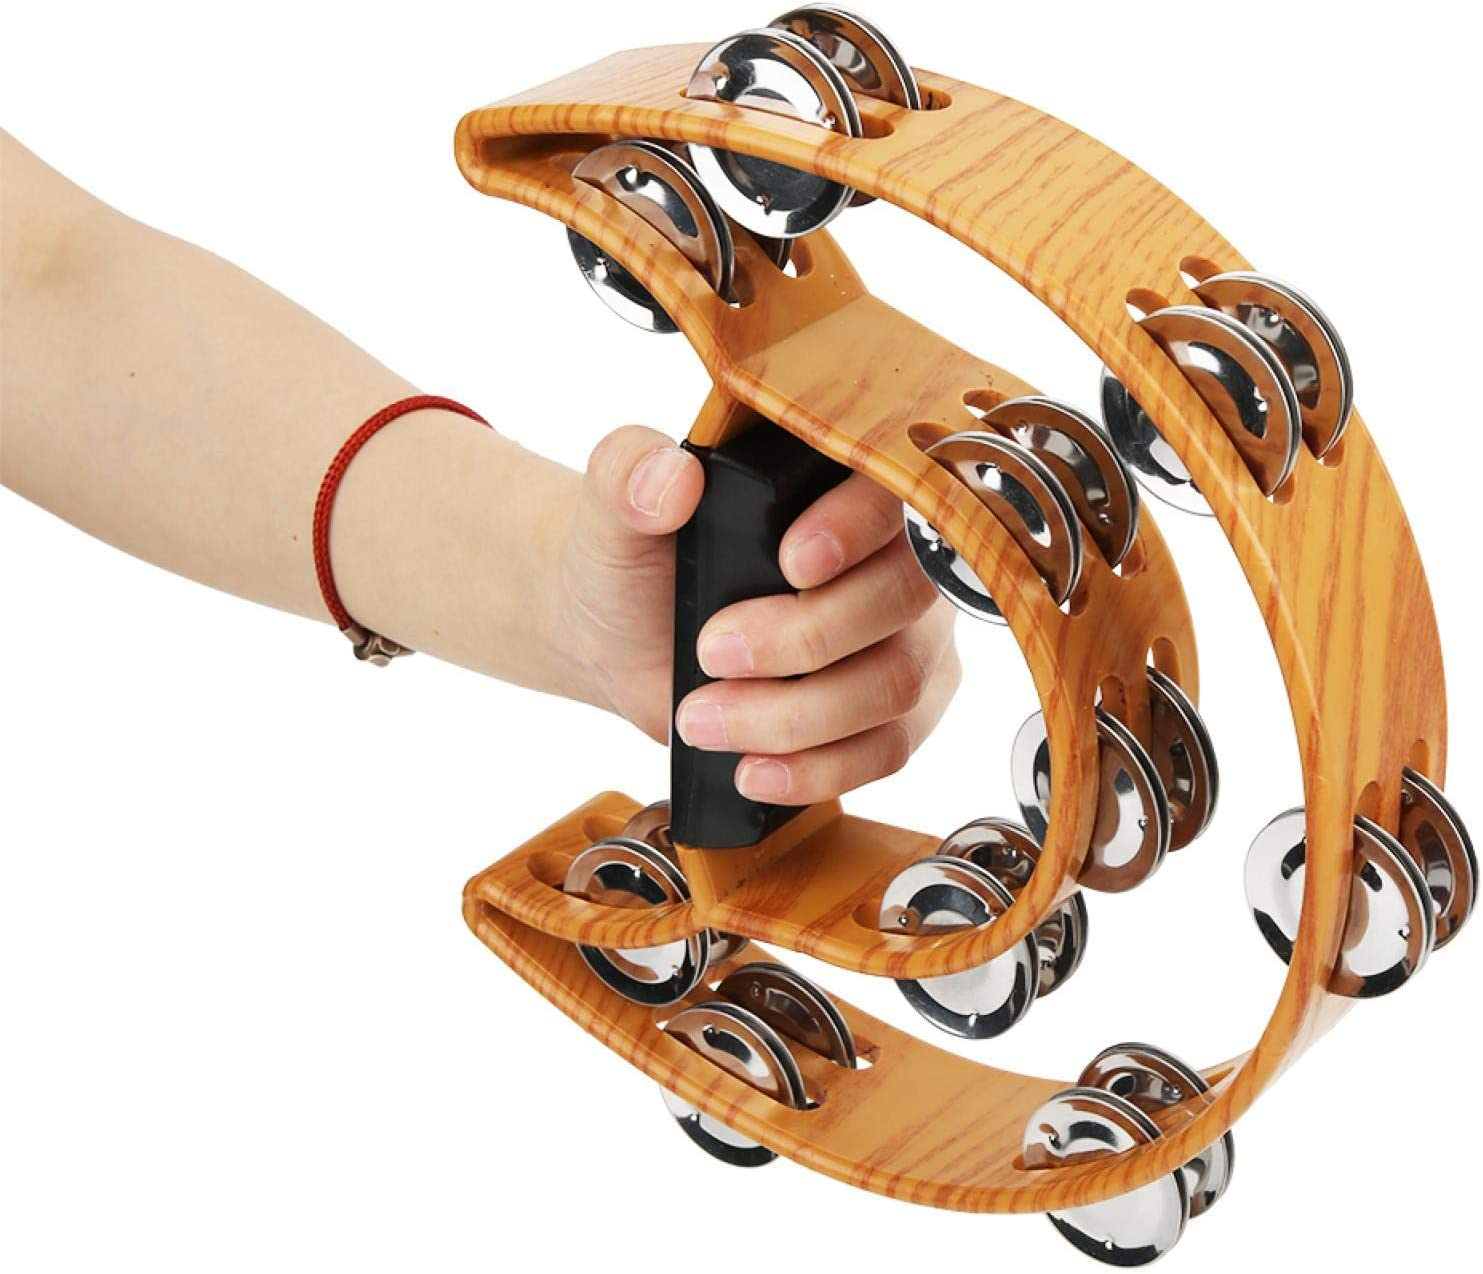 Practical Max Popular overseas 74% OFF Percussion Instrument For Children